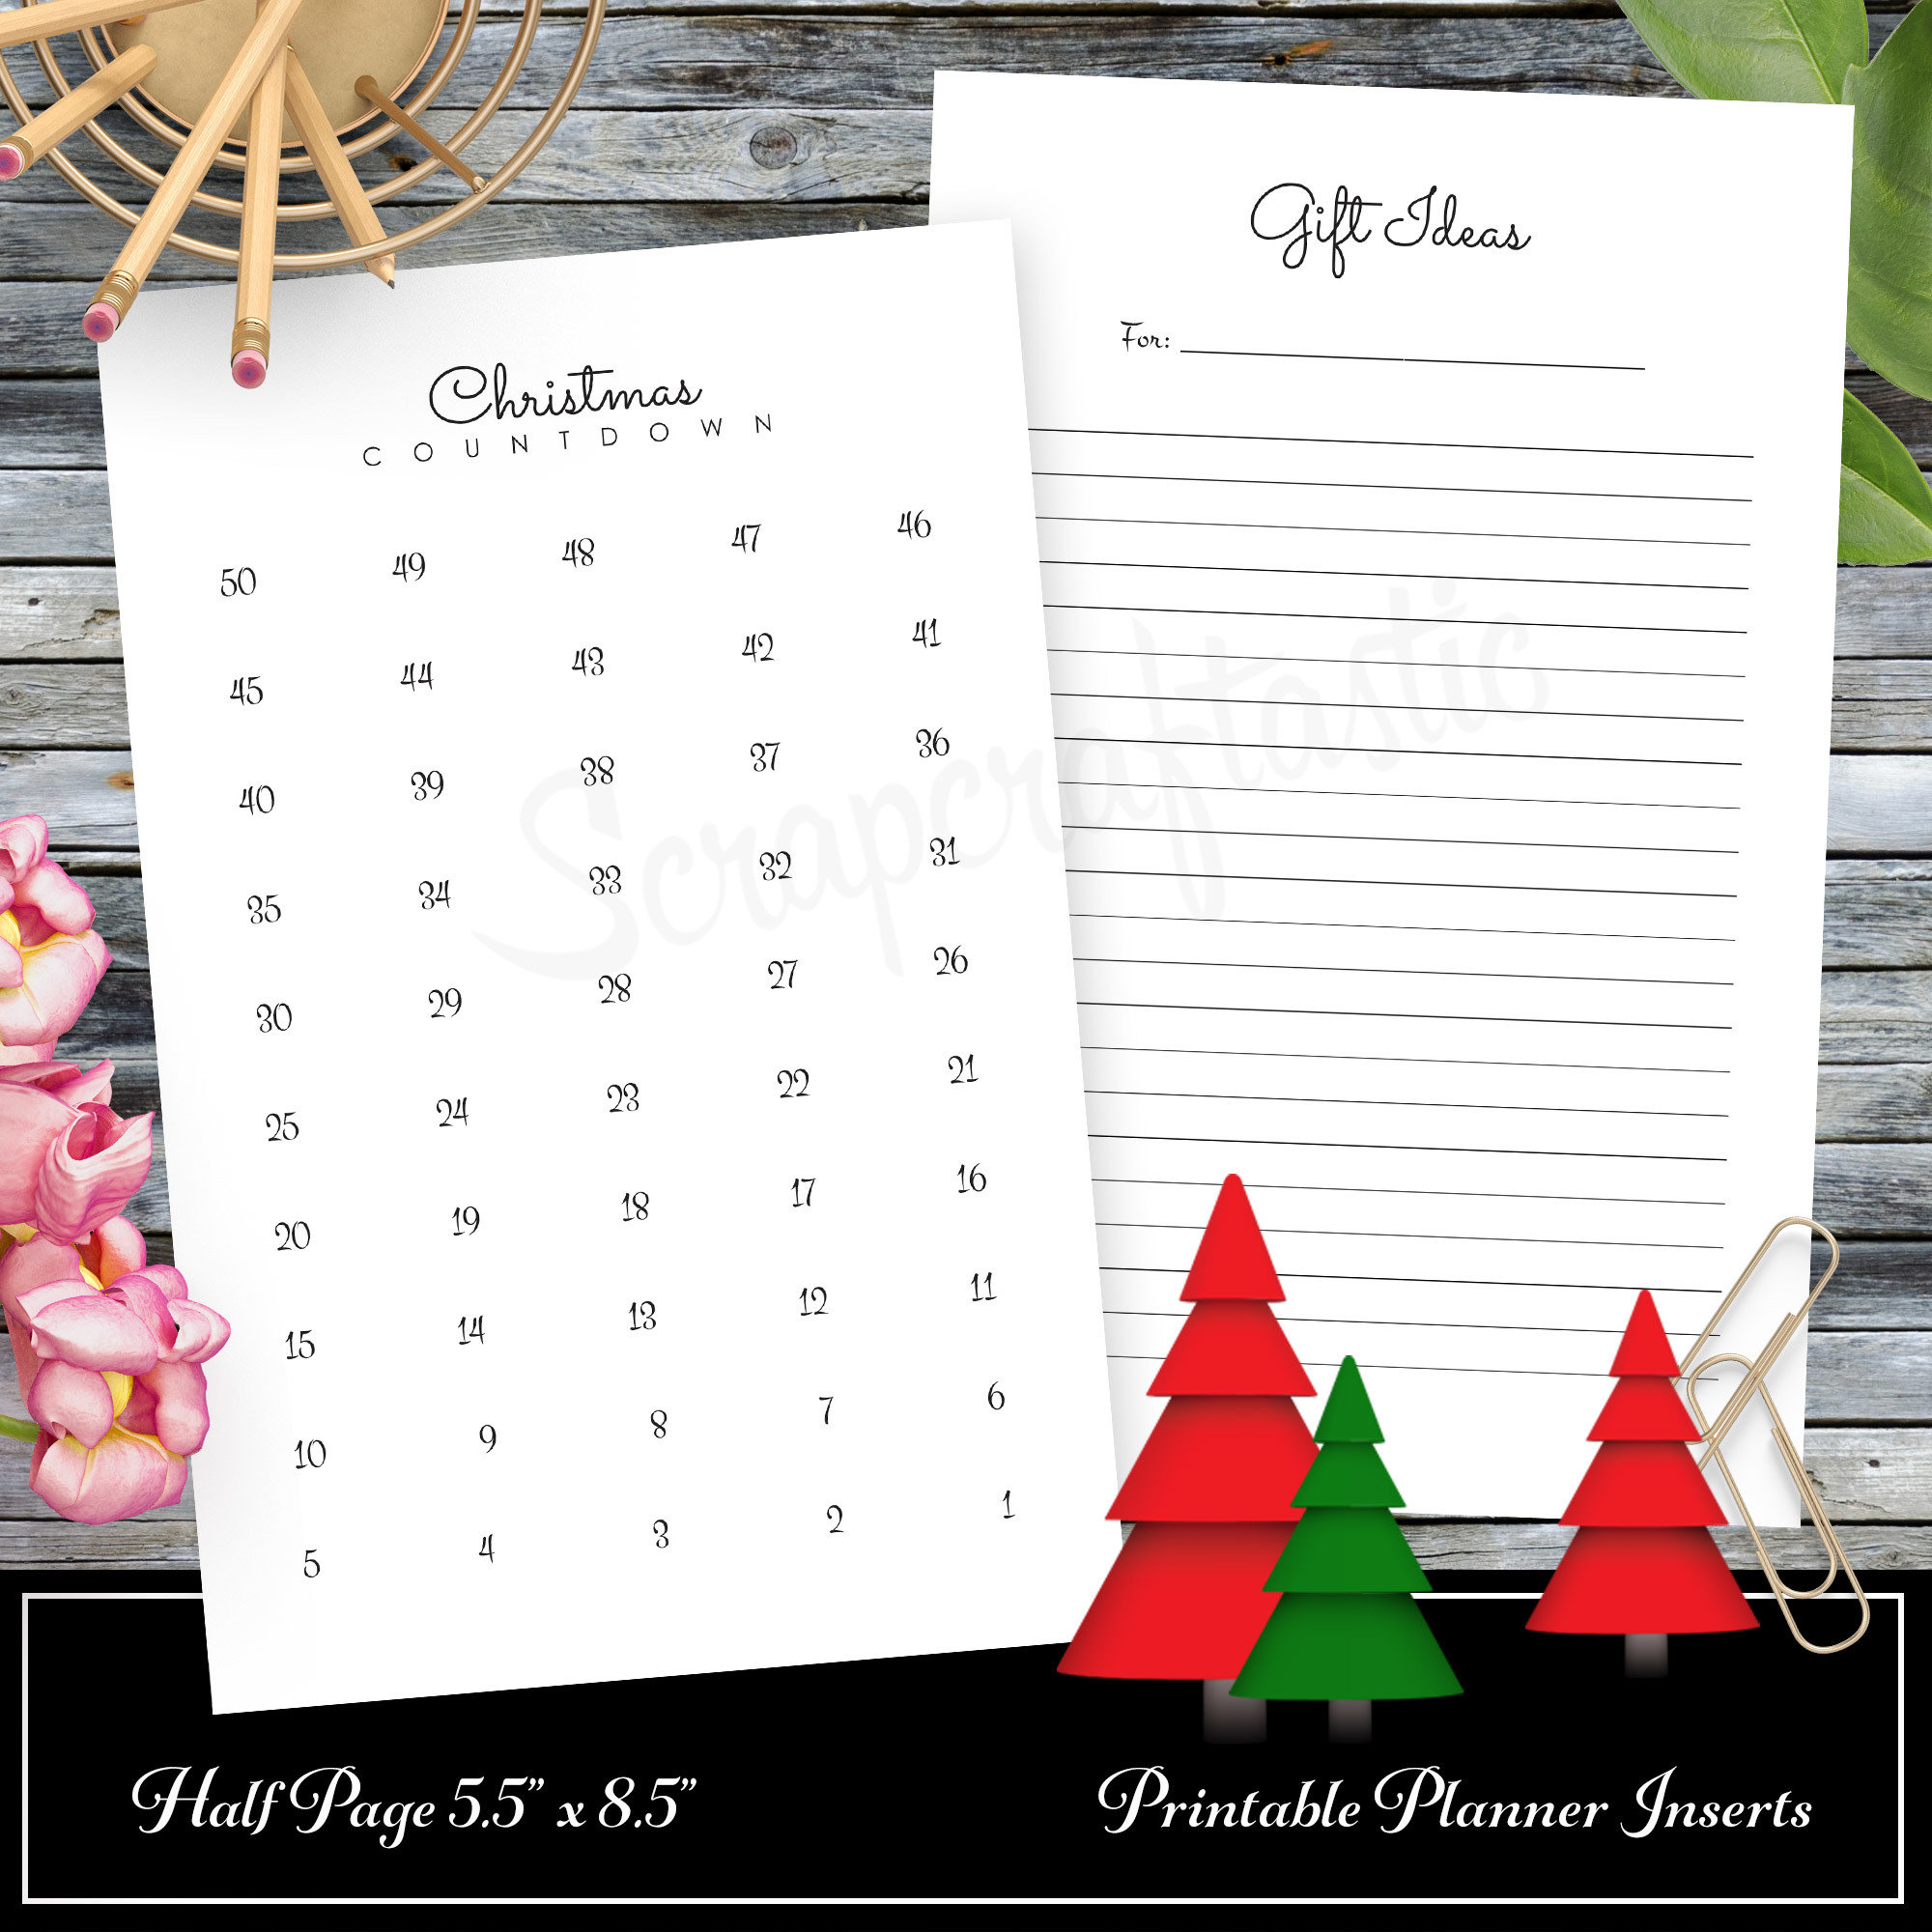 Christmas Countdown and Gift Ideas A5 Traveler's Notebook Inserts 08007